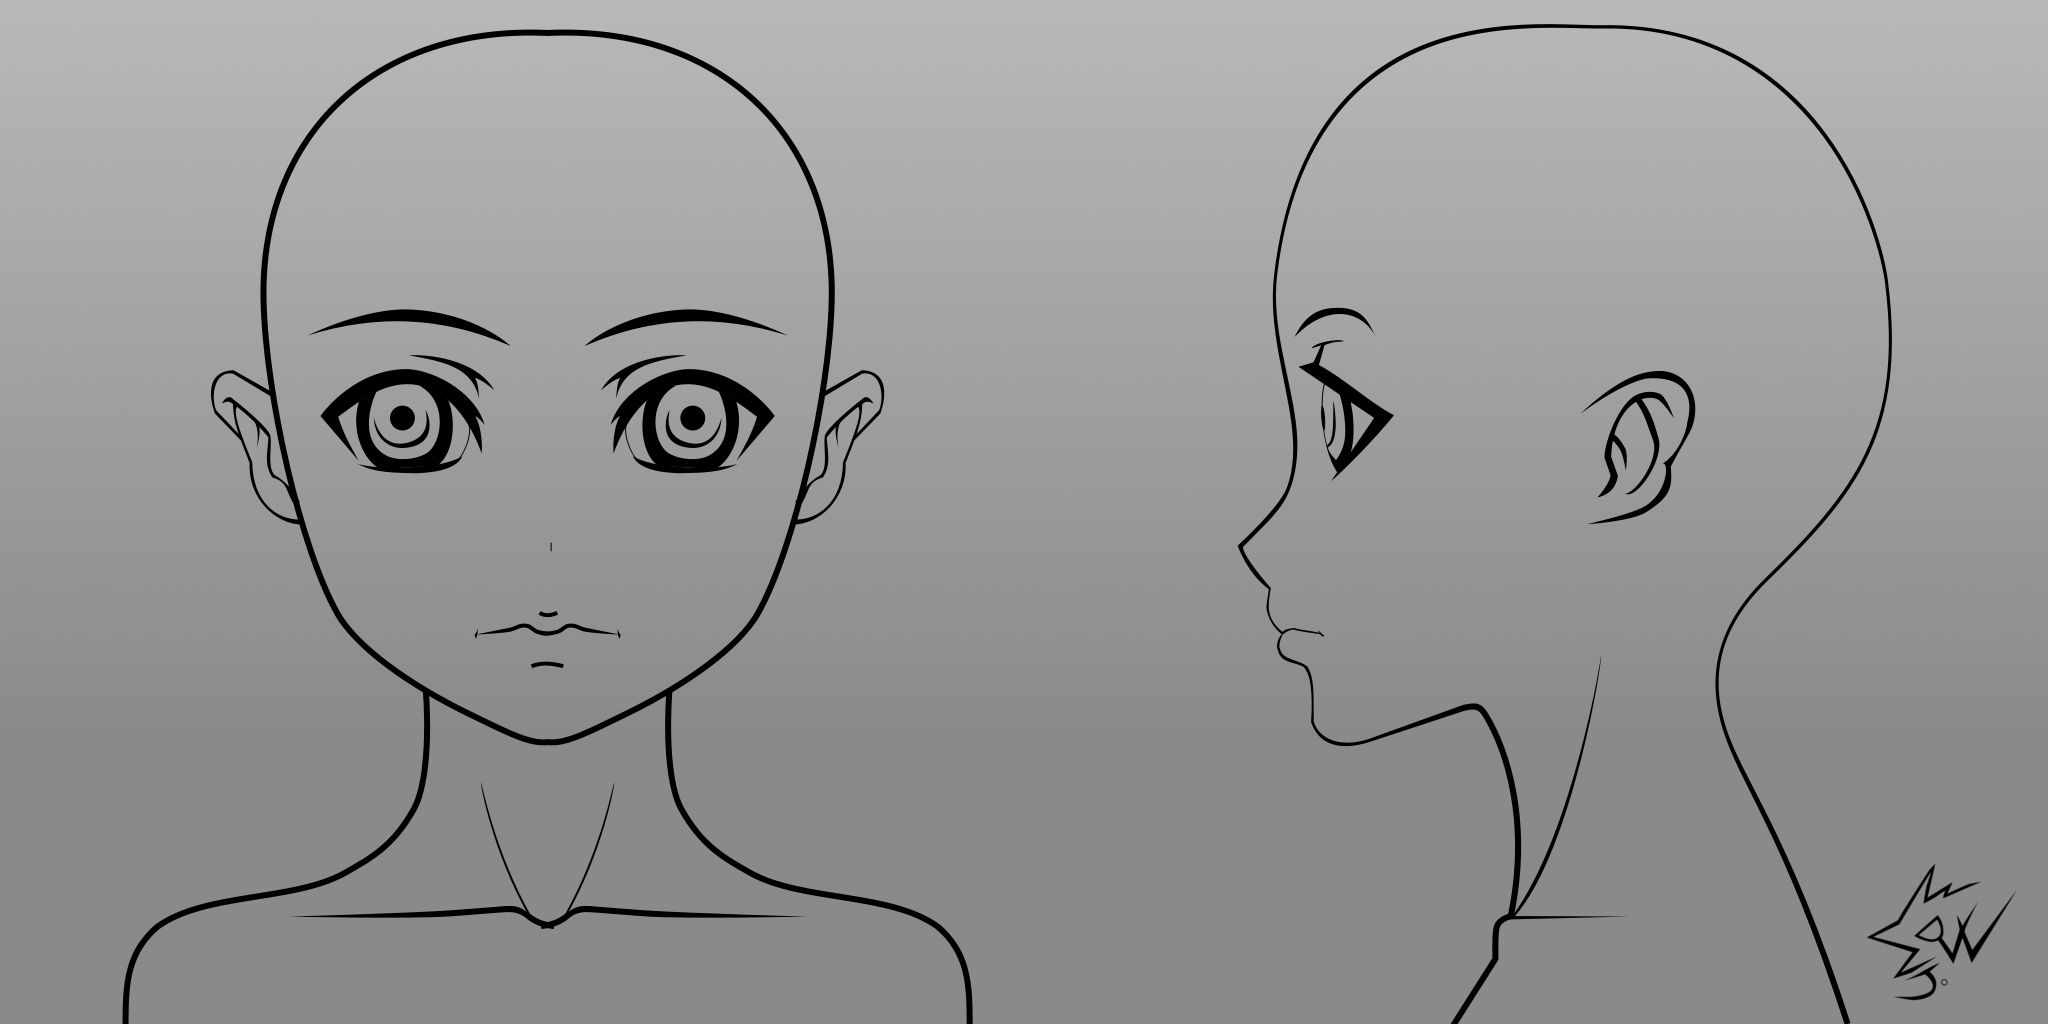 anime girl model head template 01 by johnnydwicked on deviantart